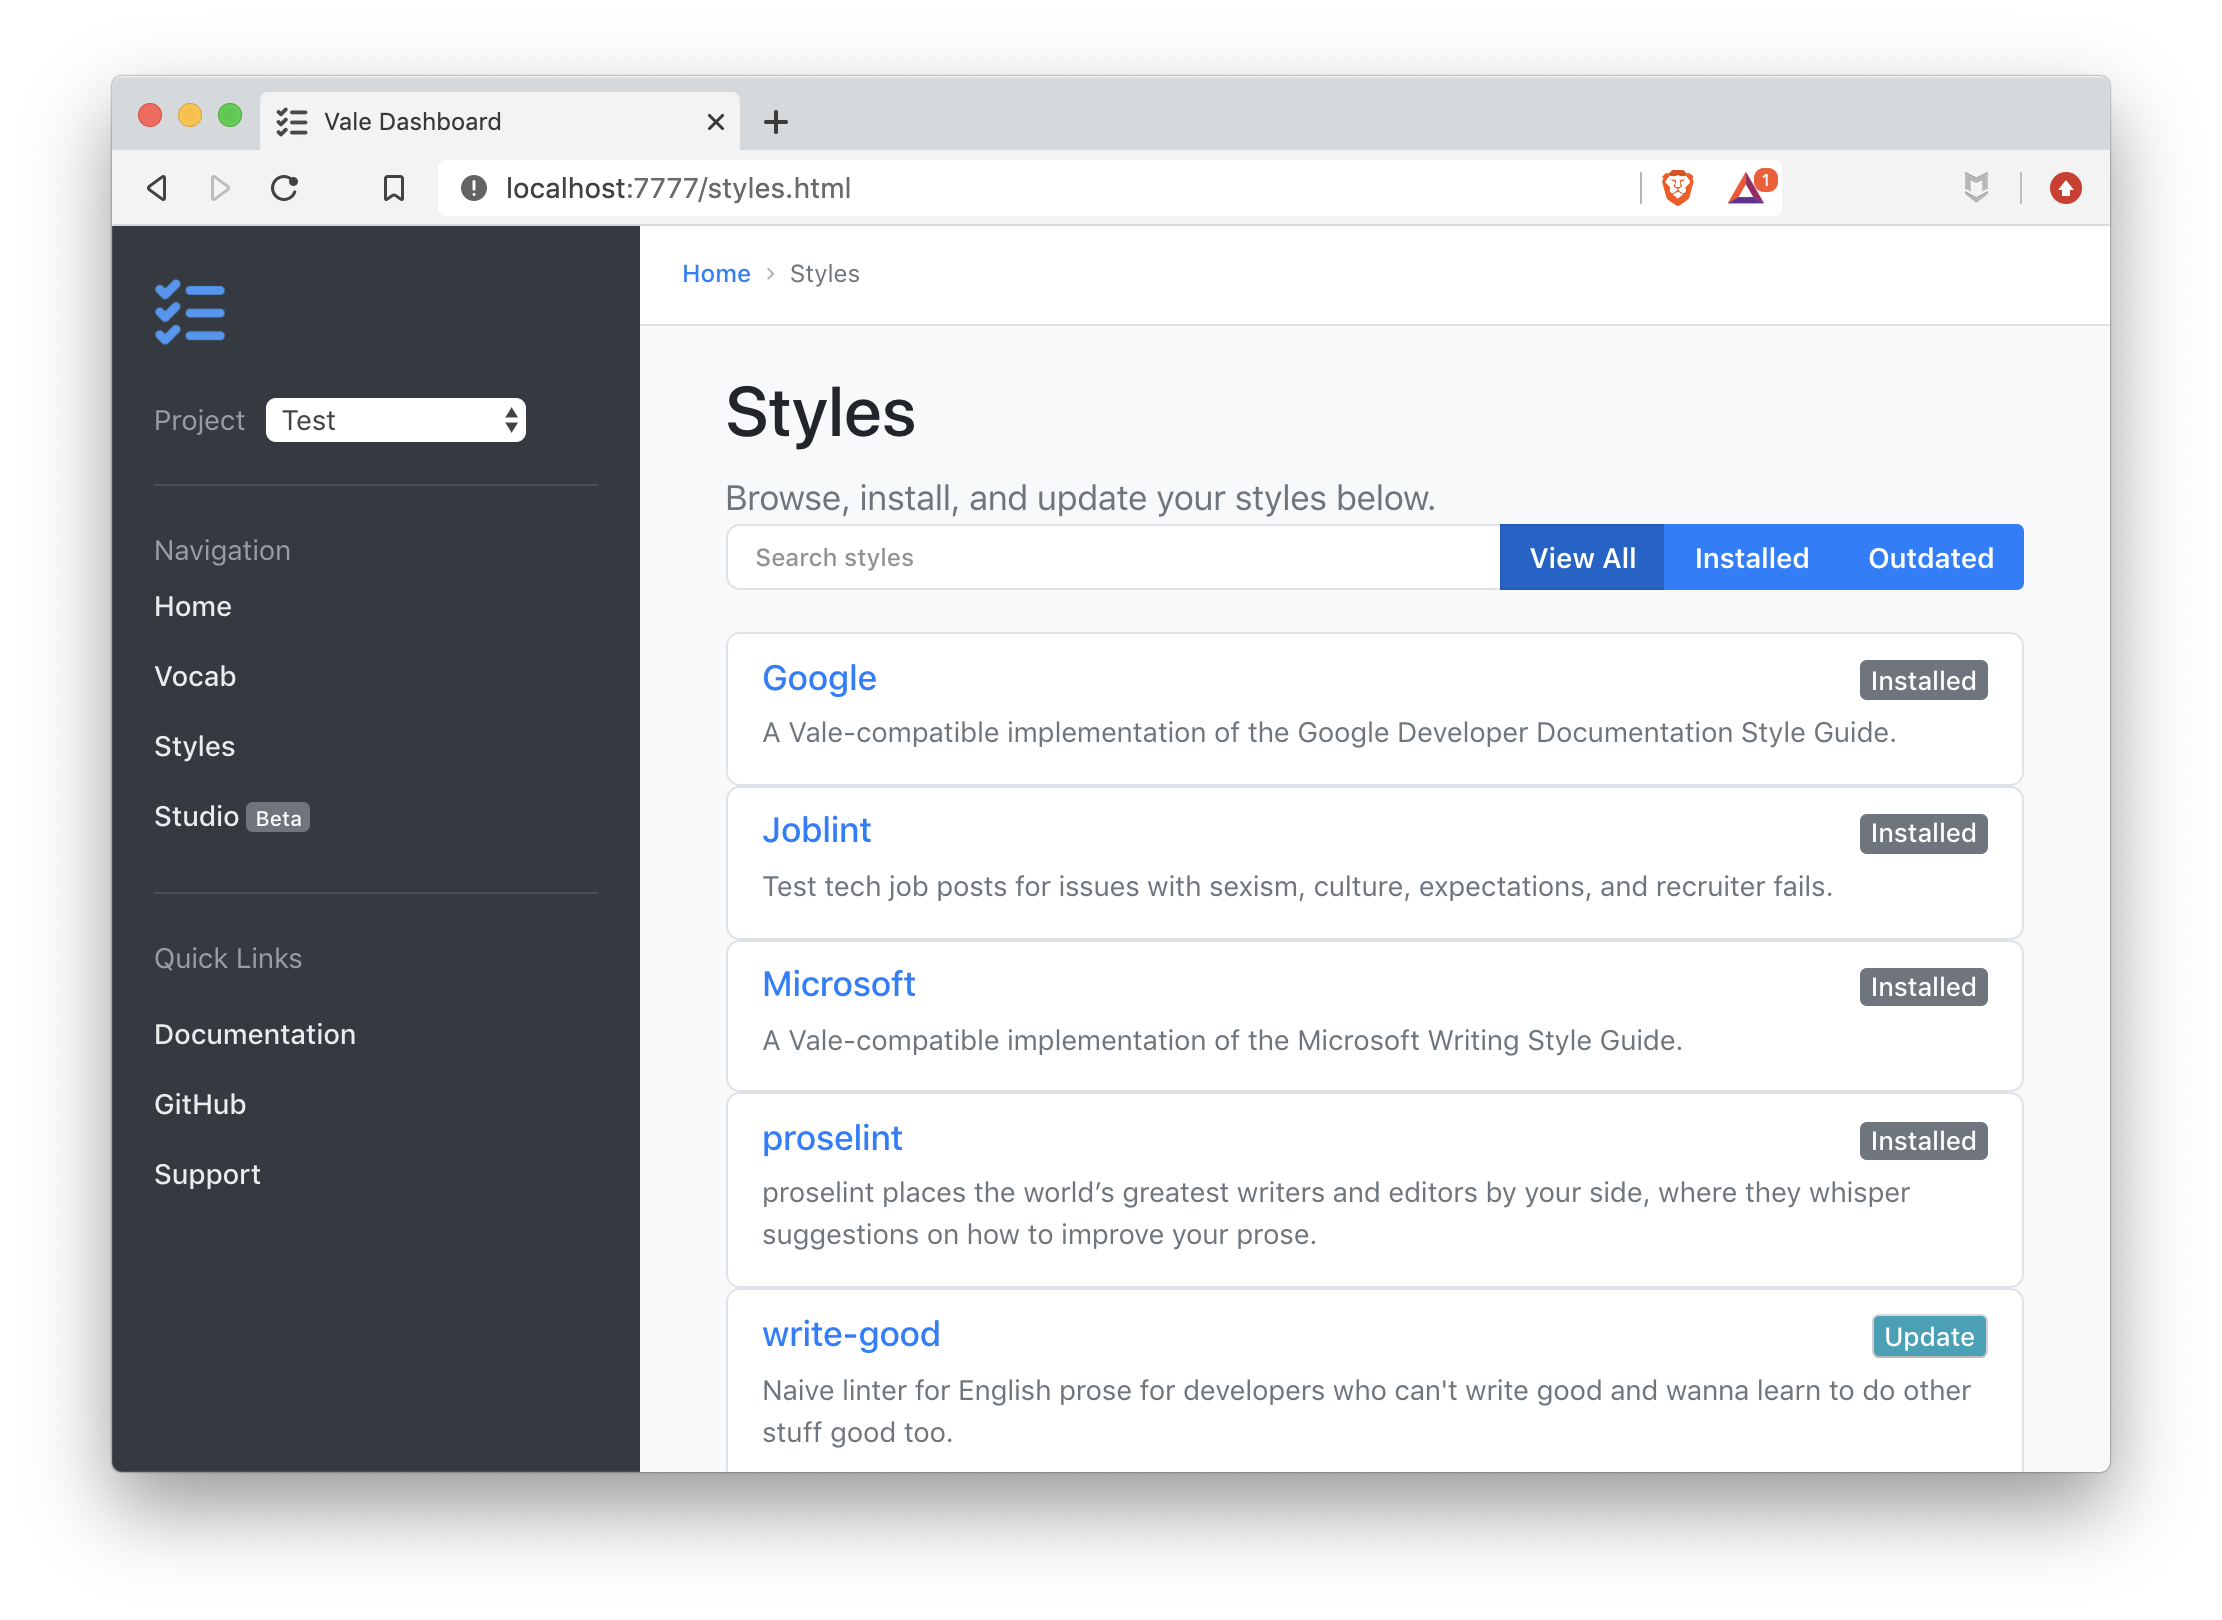 A screenshot of the dashboard's Styles page.